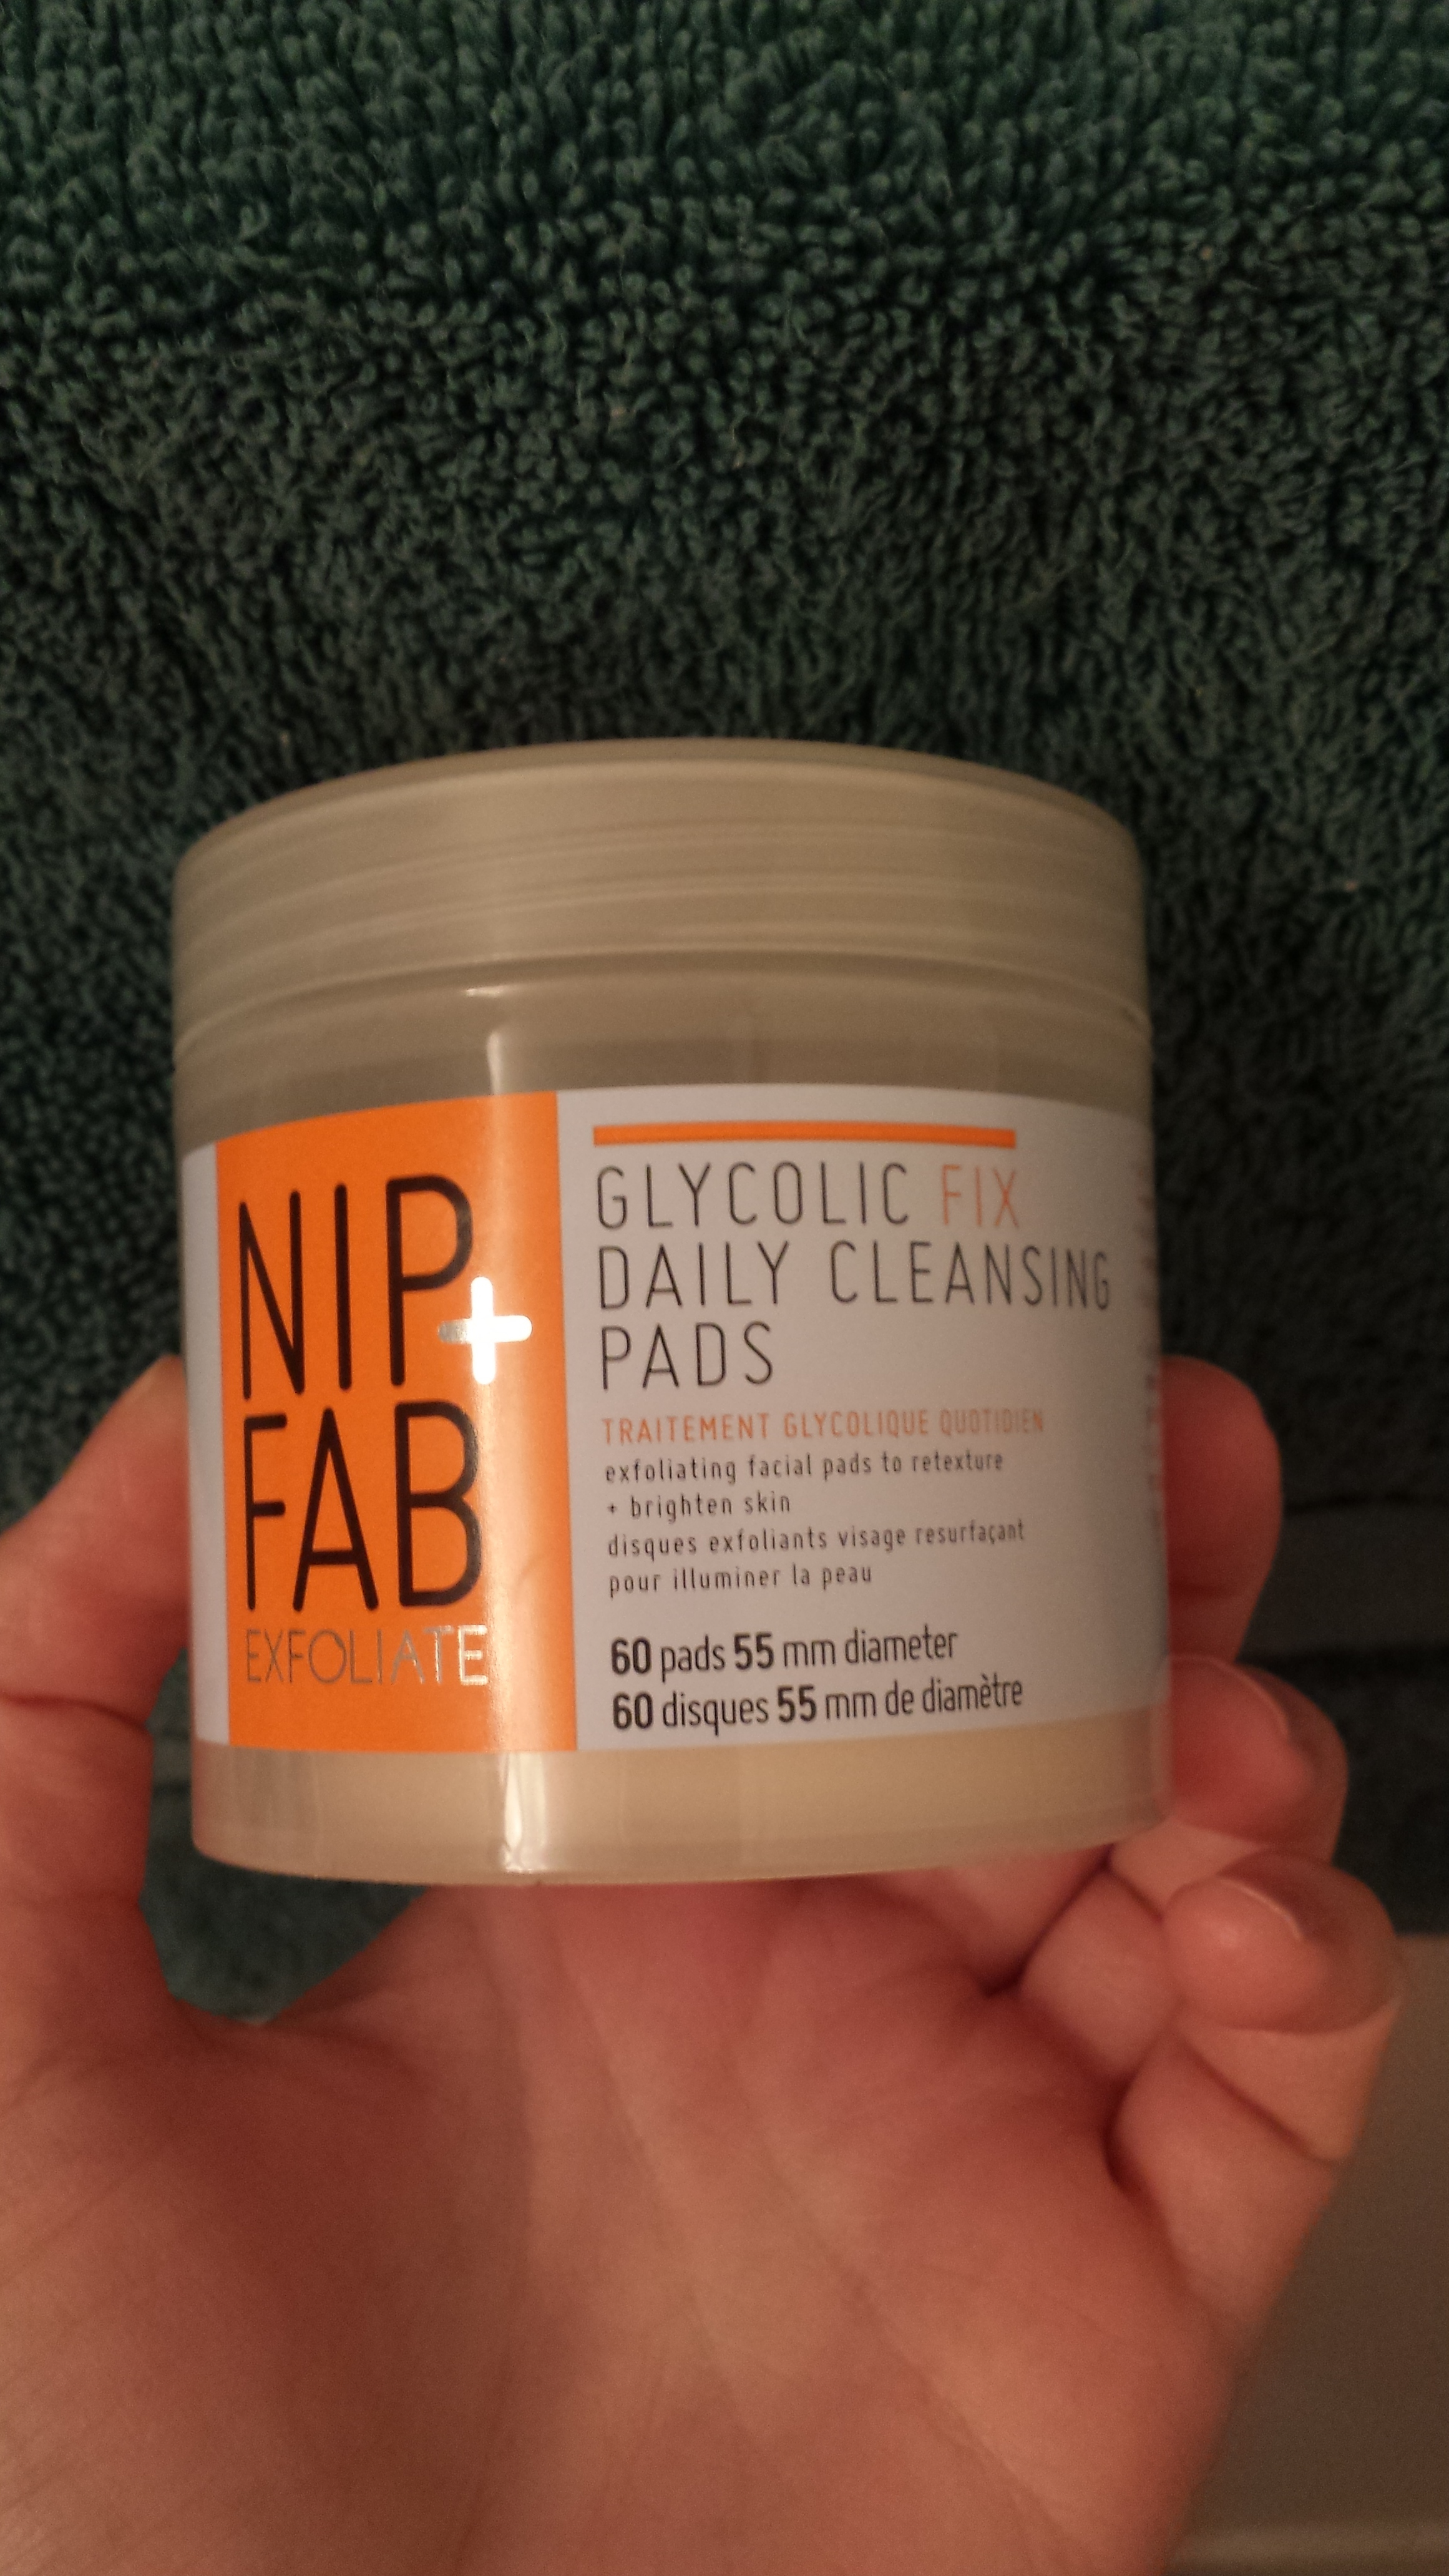 how to use nip and fab glycolic fix pads night